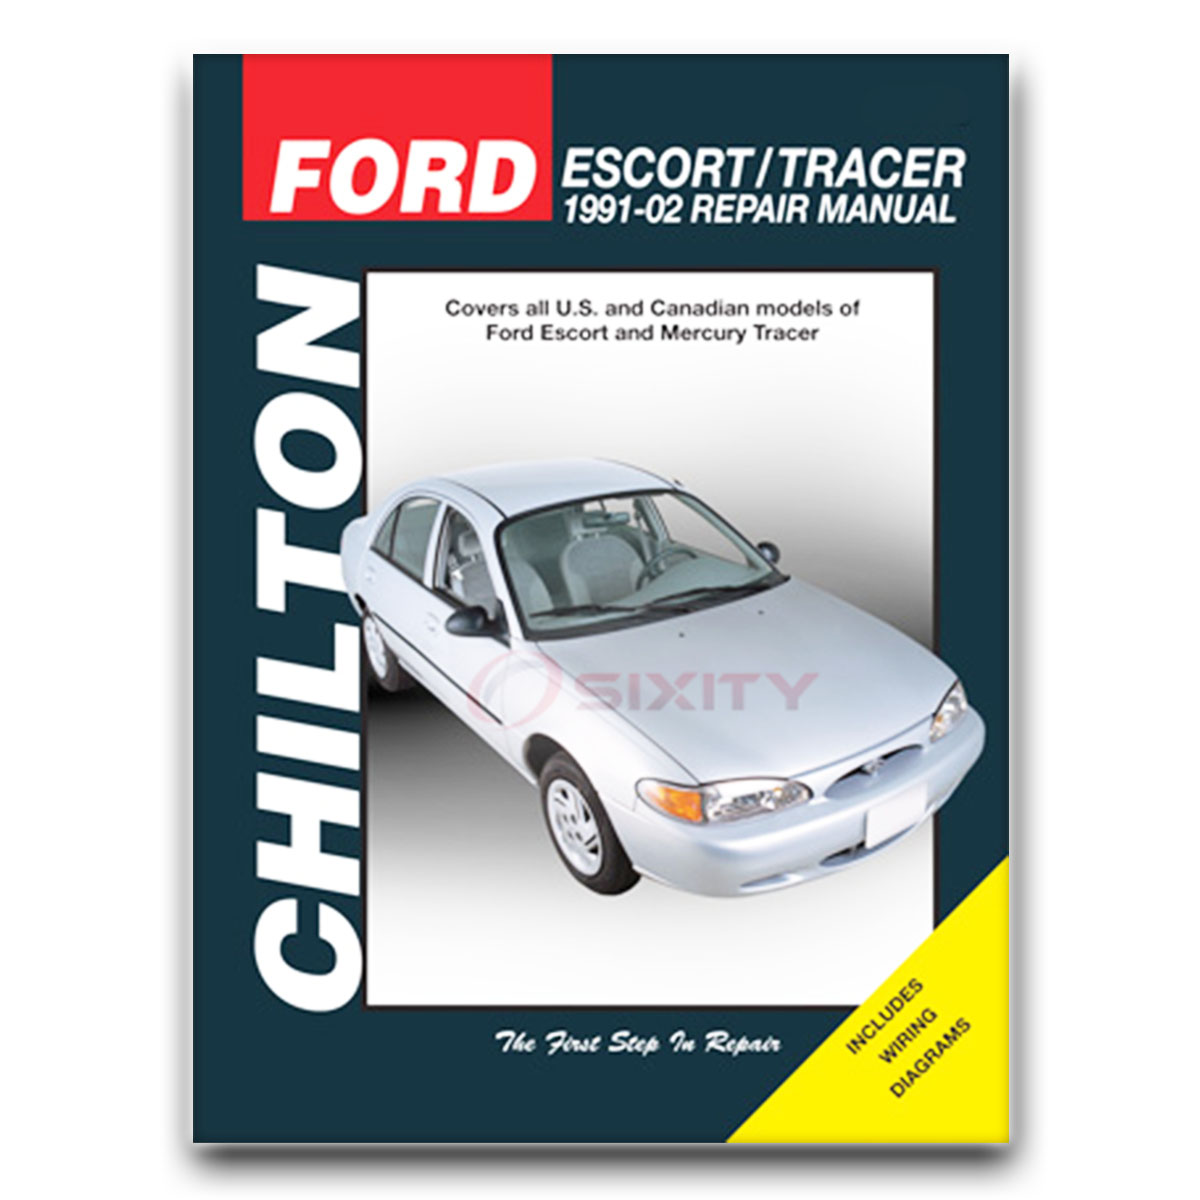 Ford escort zx2 repair guide